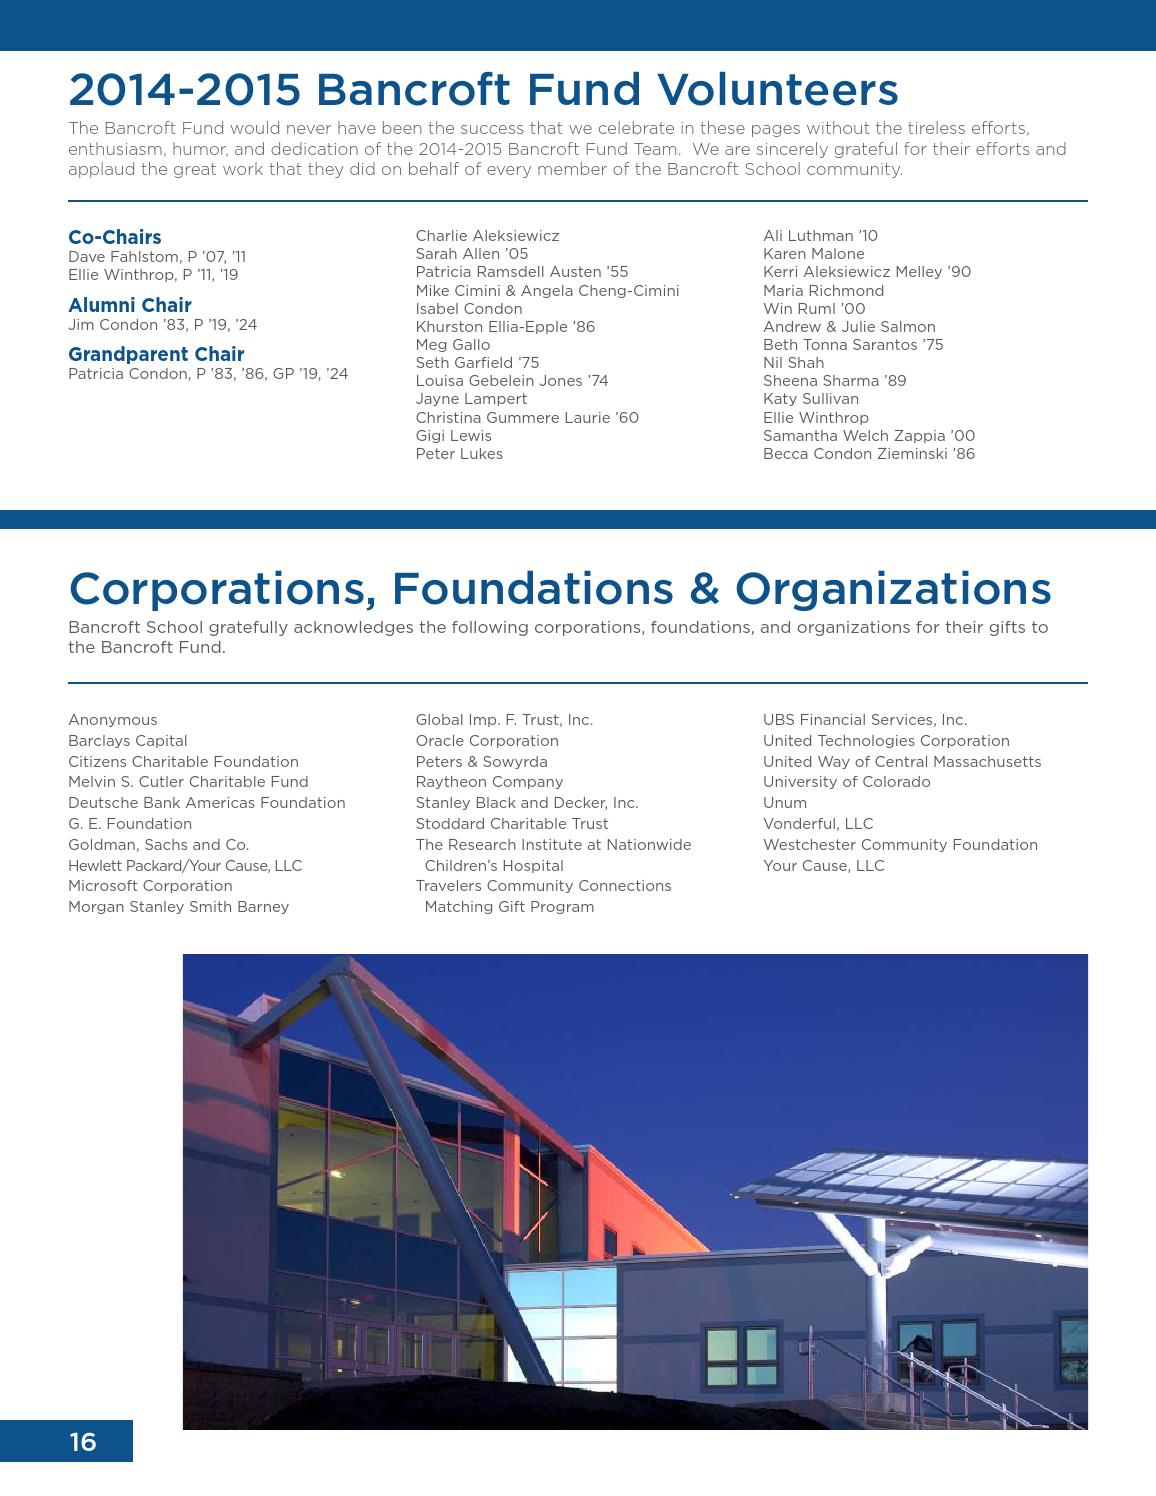 F/W 2015 Bancroft Bulletin and 14-15 Annual Report by Bancroft